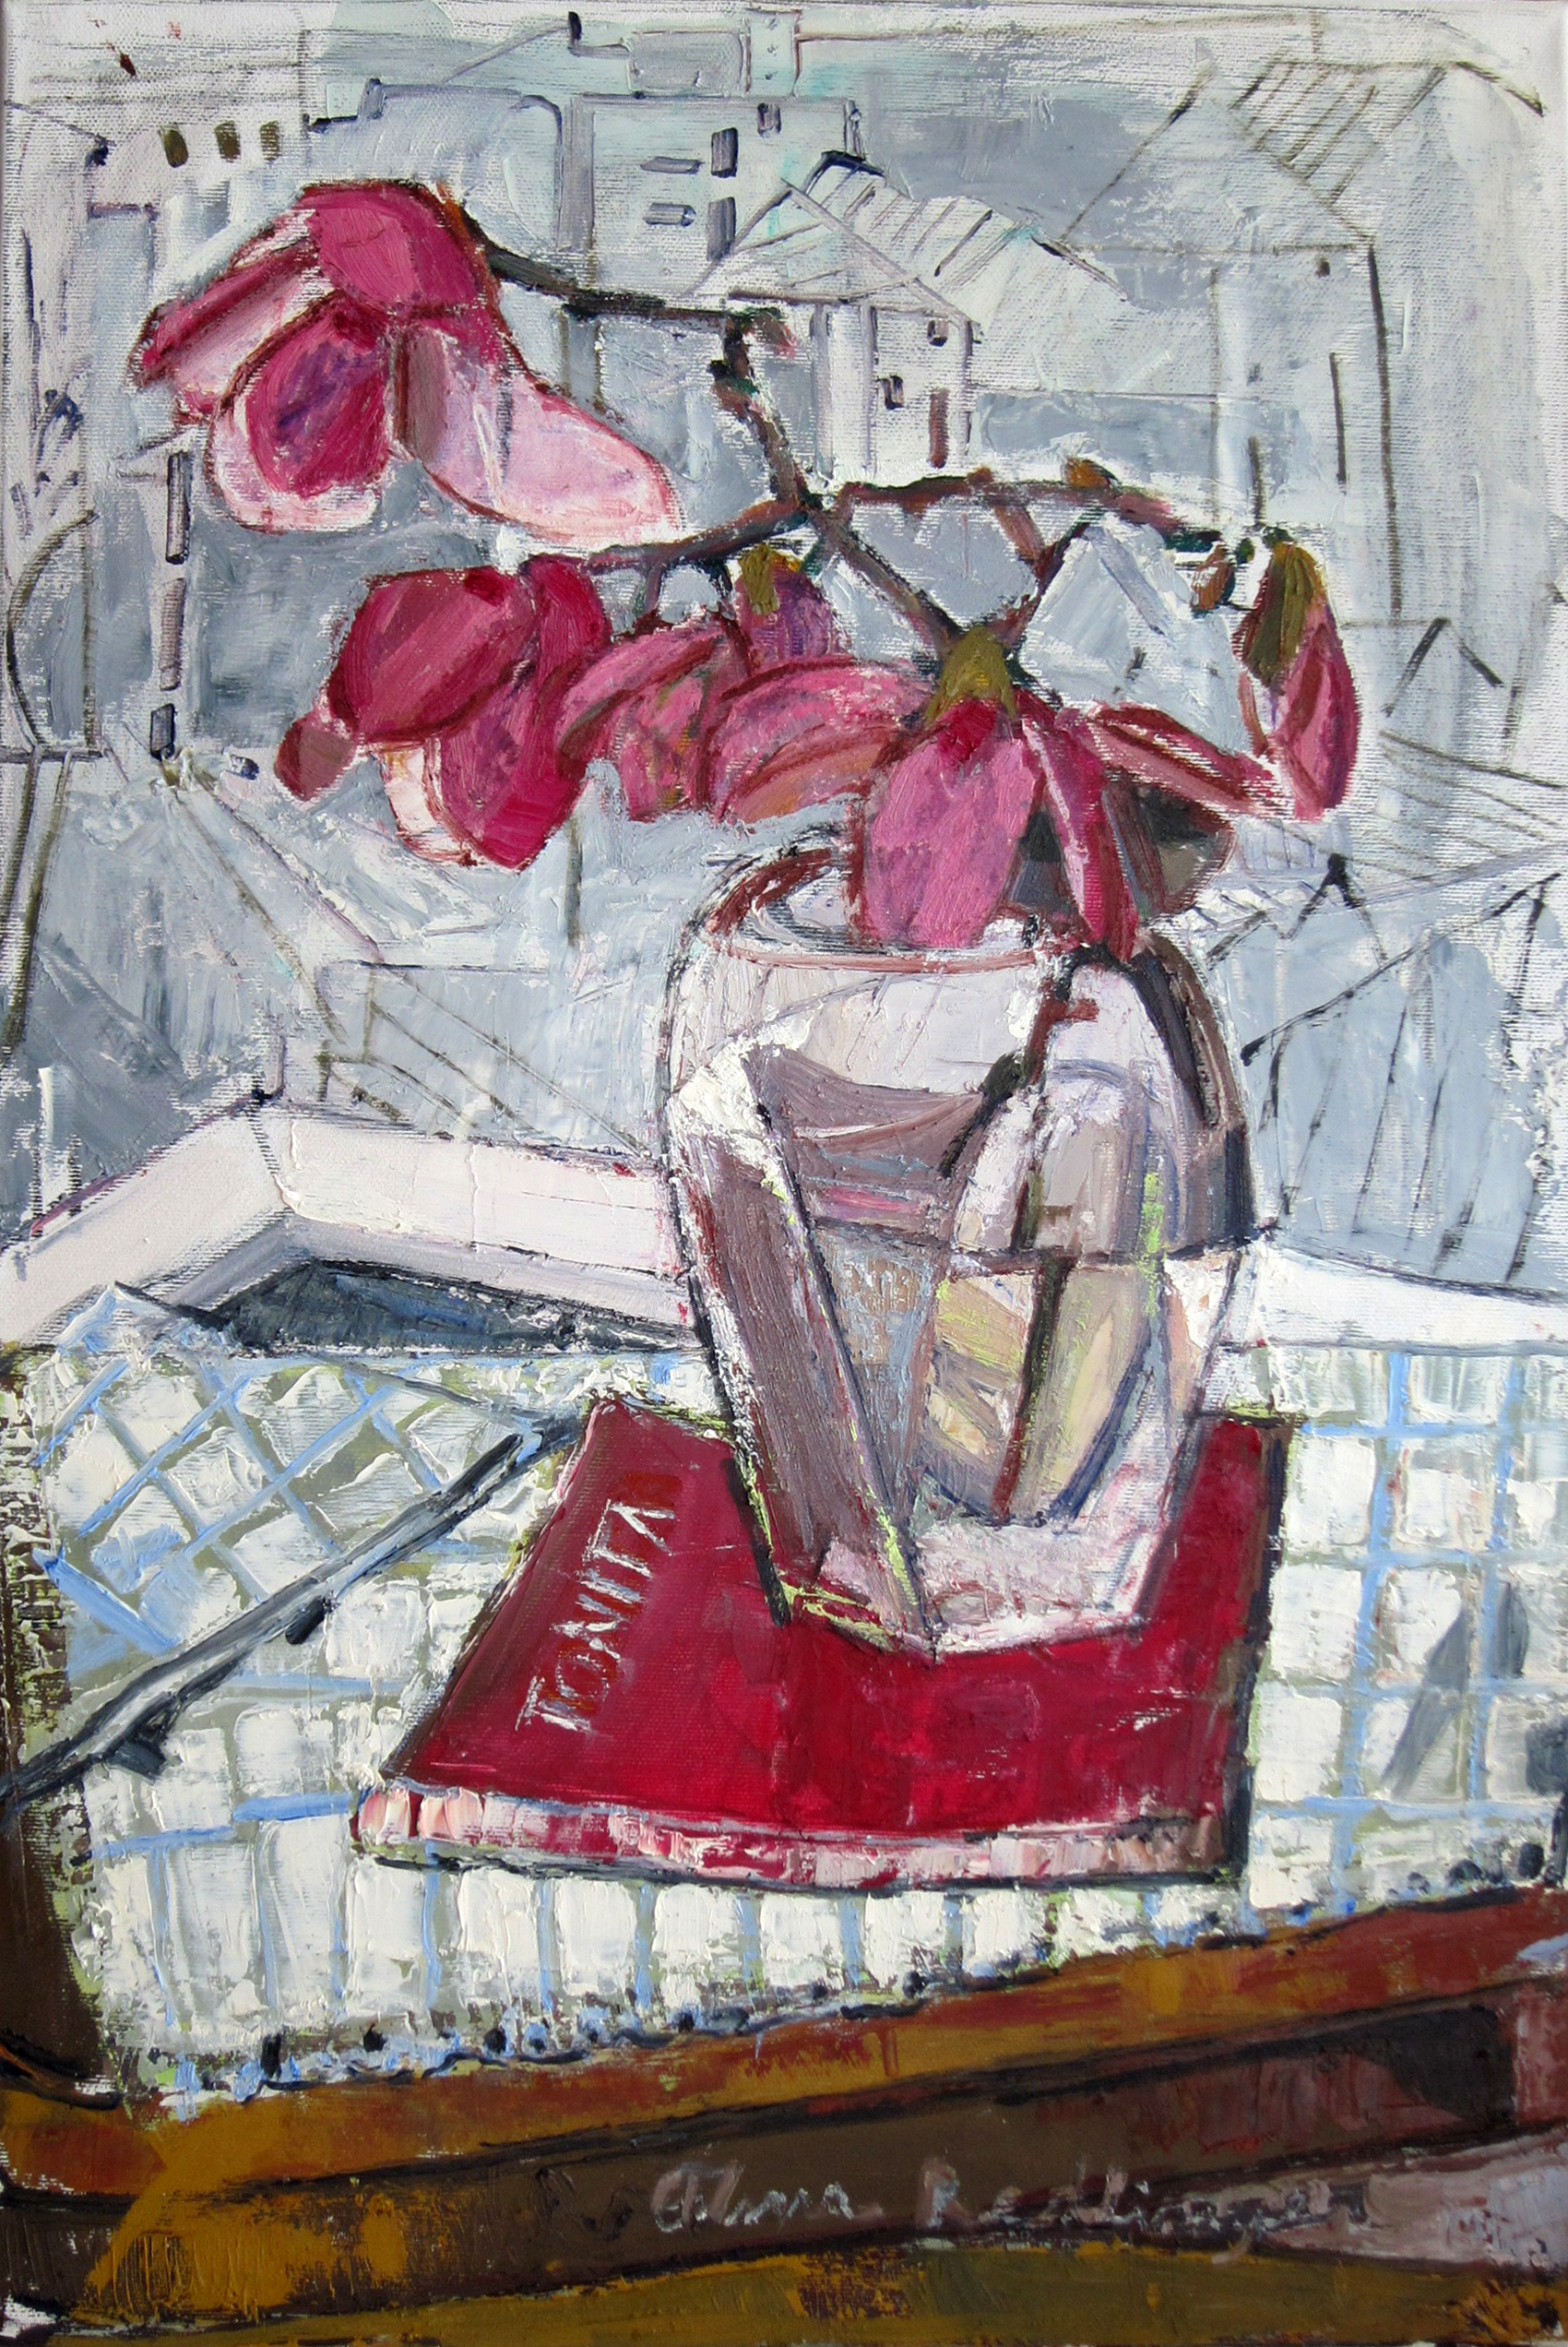 Magnolias and the city seen from above, 2012, oil/canvas, 60x40 cm